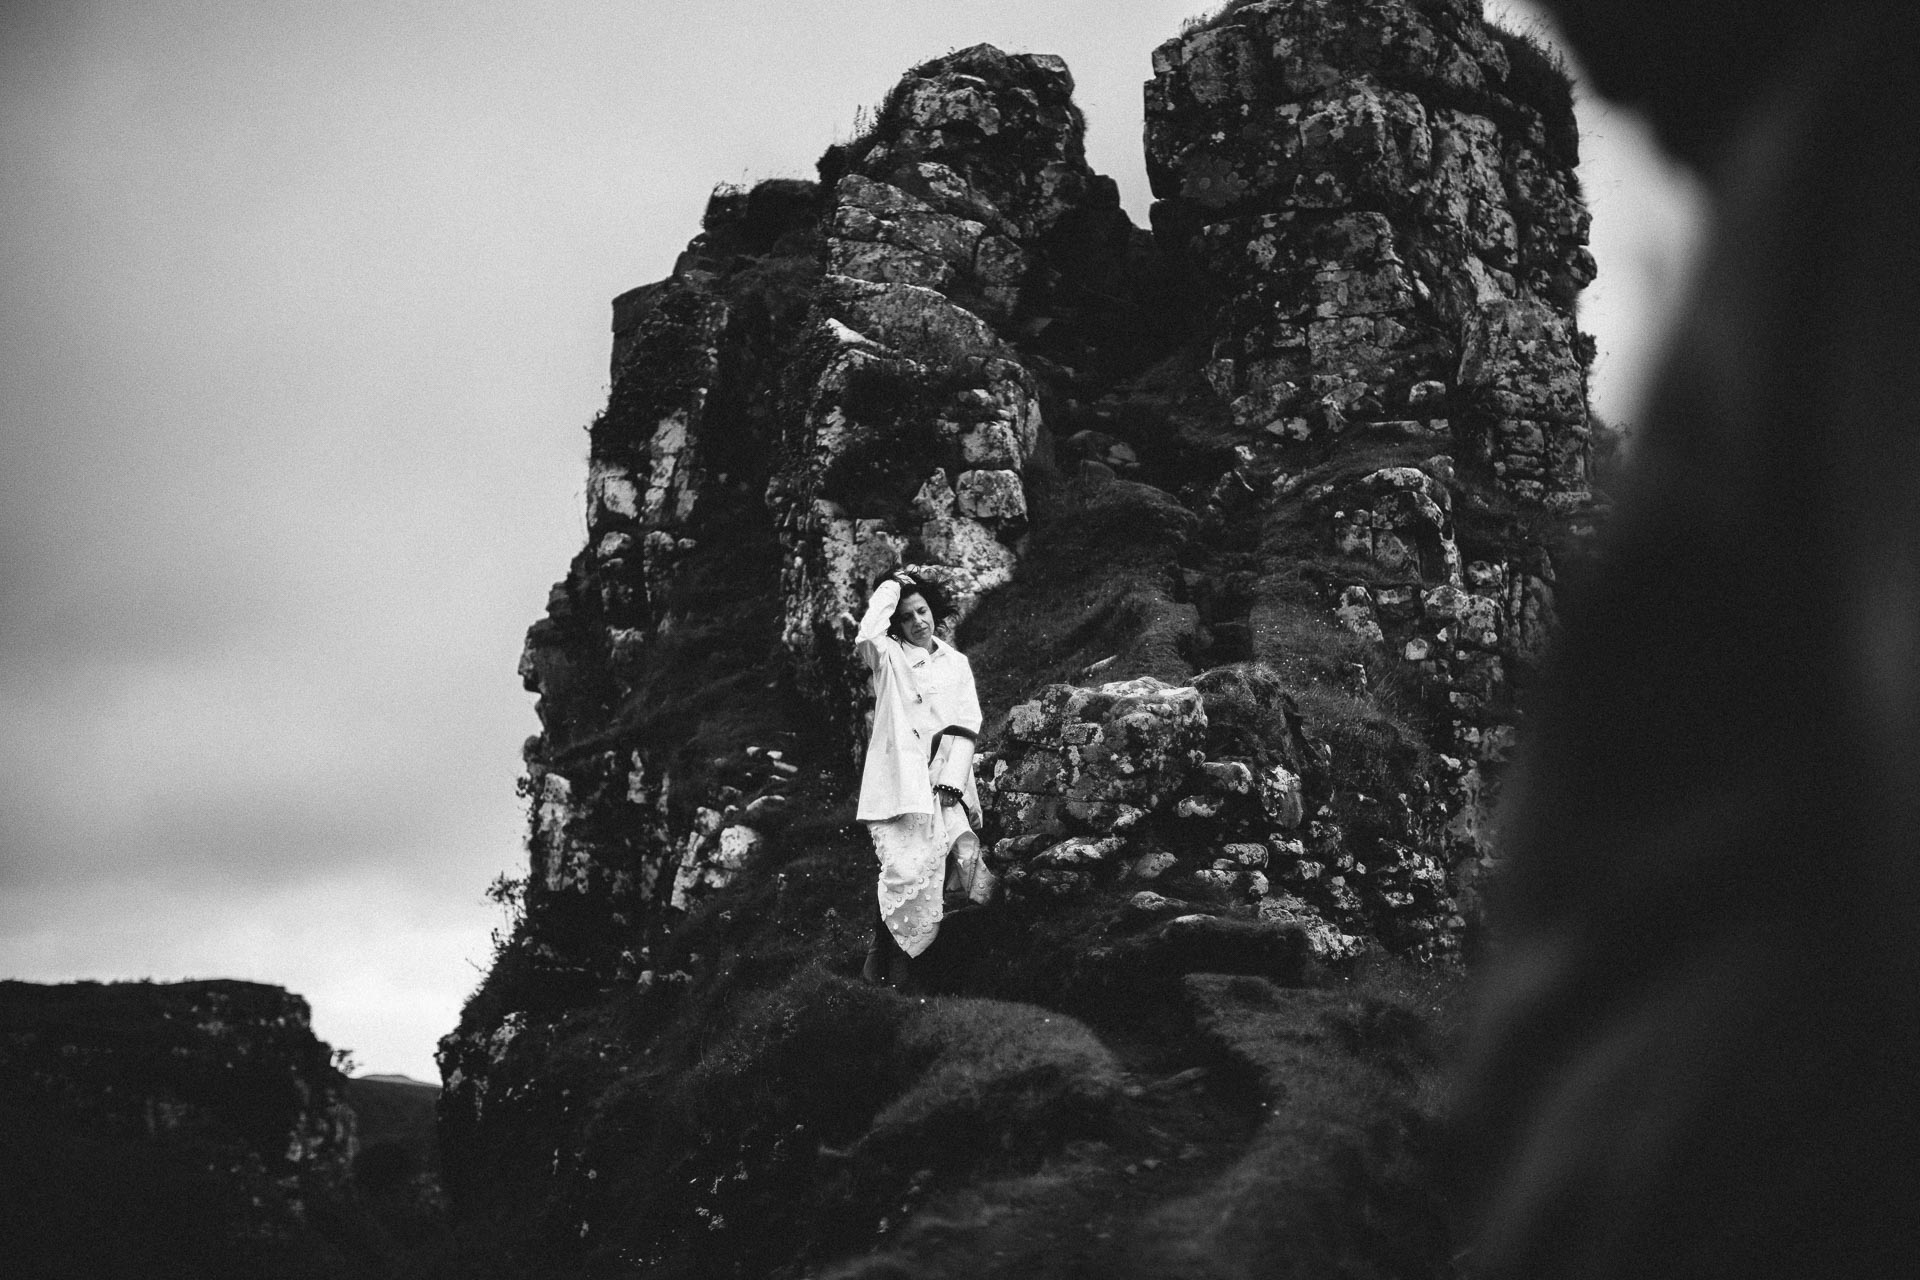 Megan_Matt_Elopement_IntimateWedding_Scotland_IsleOfSkye_JeanLaurentGaudy_102